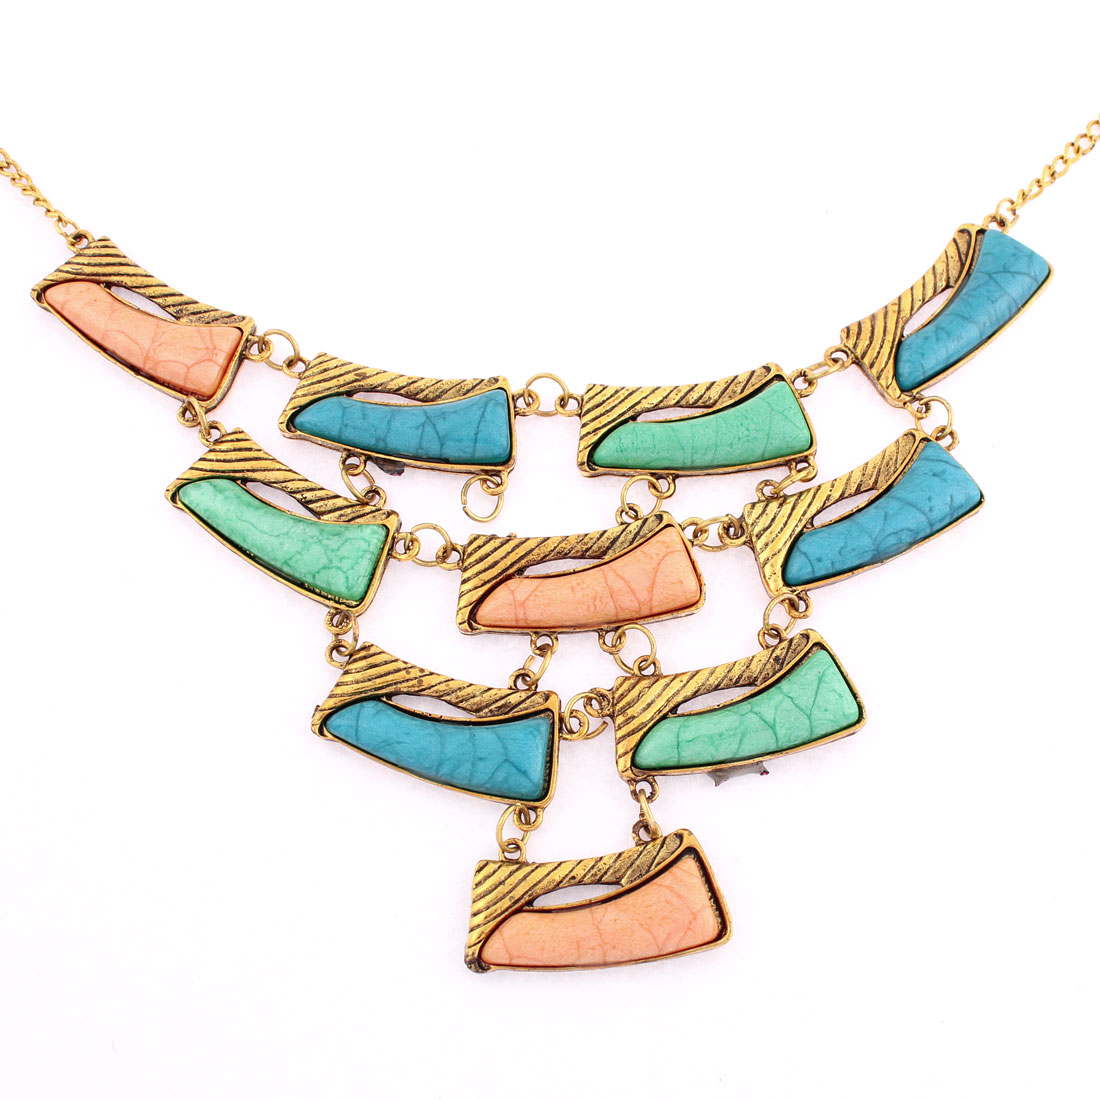 Women Gold Tone Chain Pendant Statement Necklace Choker Jewelry